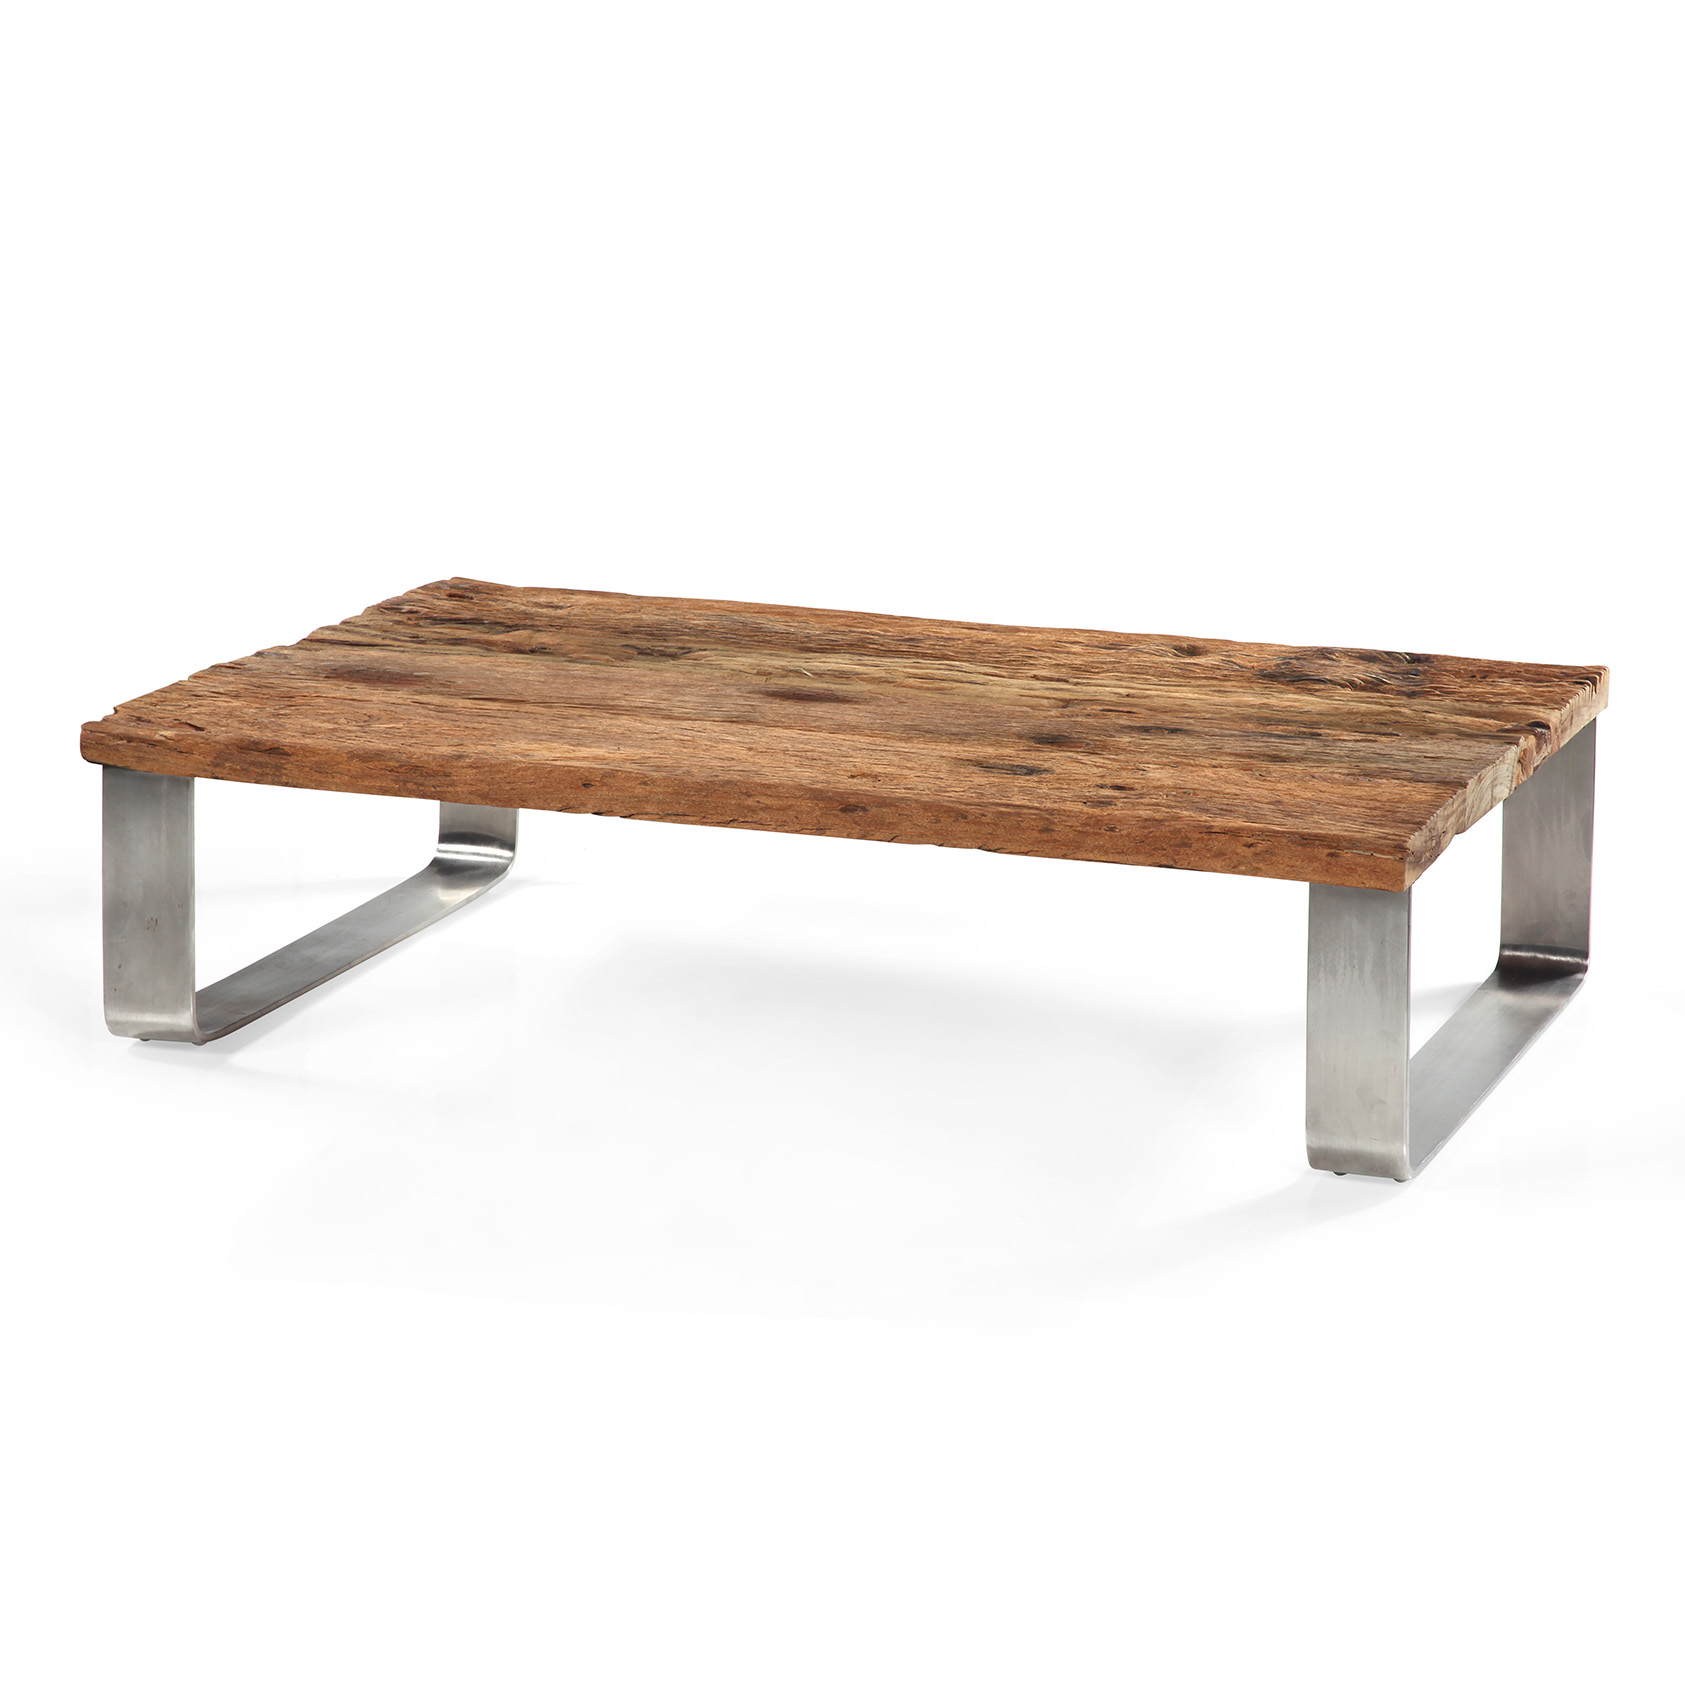 Table basse teck for Table basse en teck massif